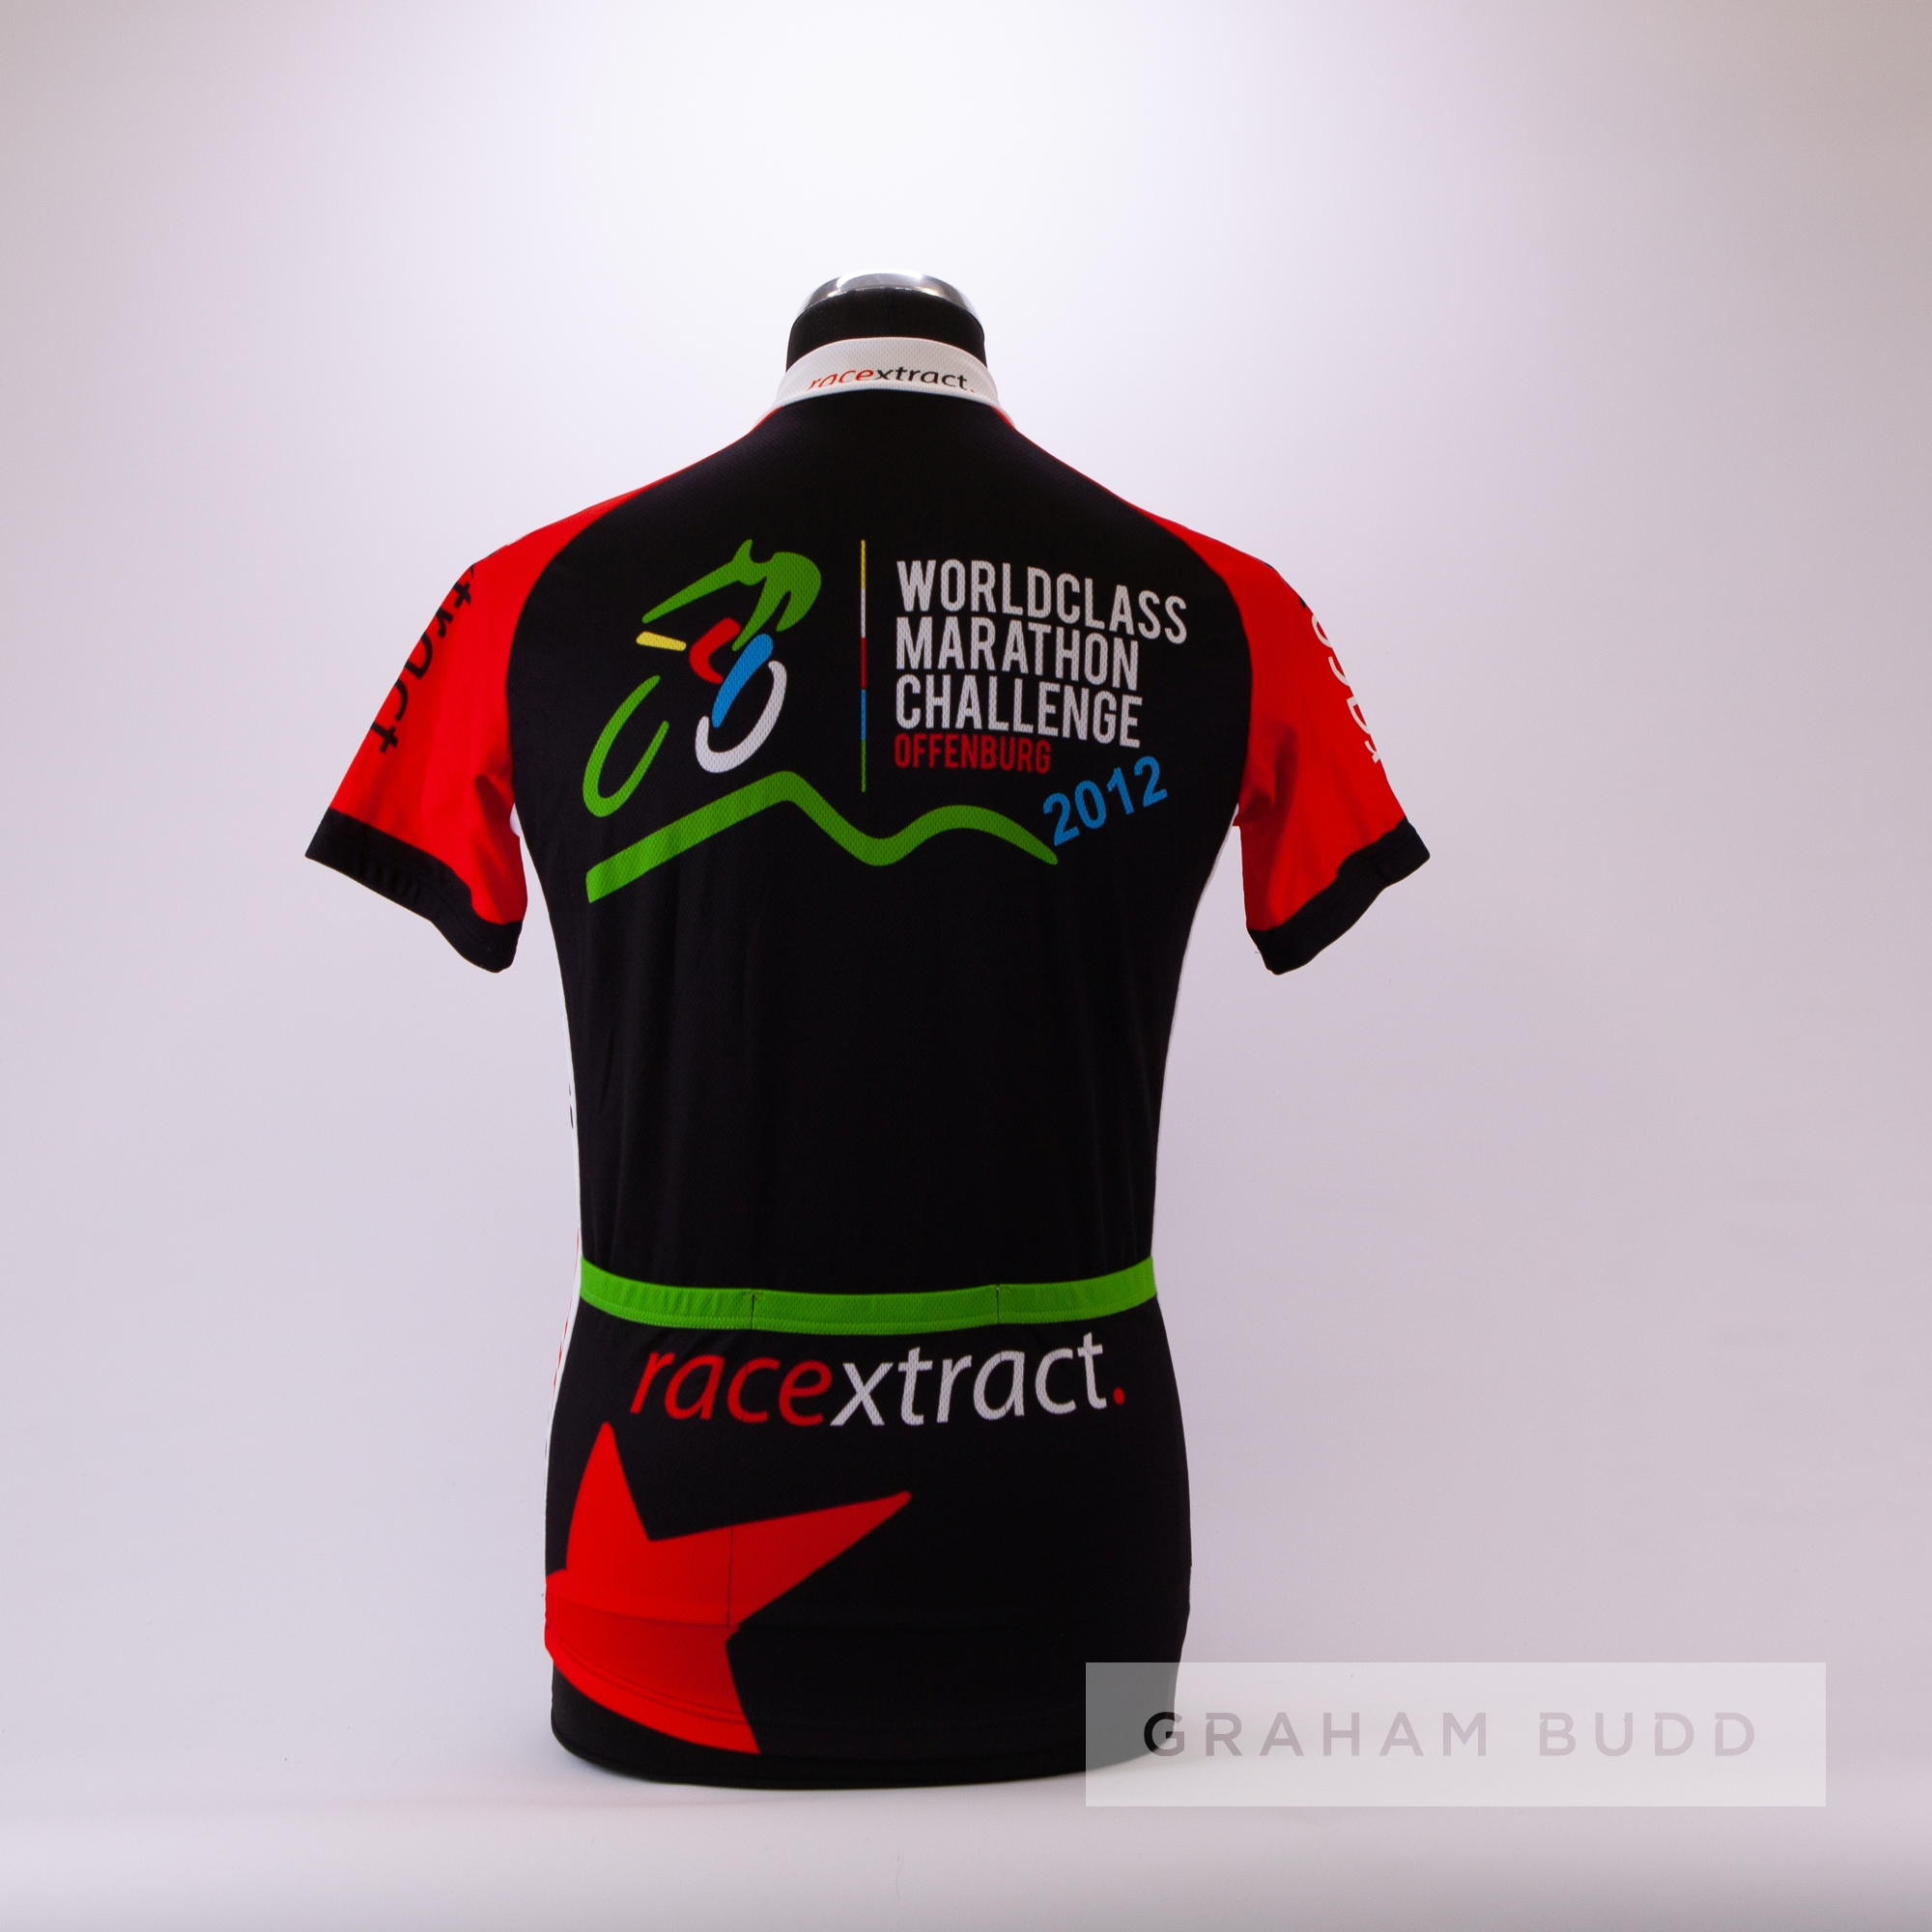 2012 black, red, white and green World Class Marathon Challenge Offenburg Race Xtract Cycling race - Image 4 of 4